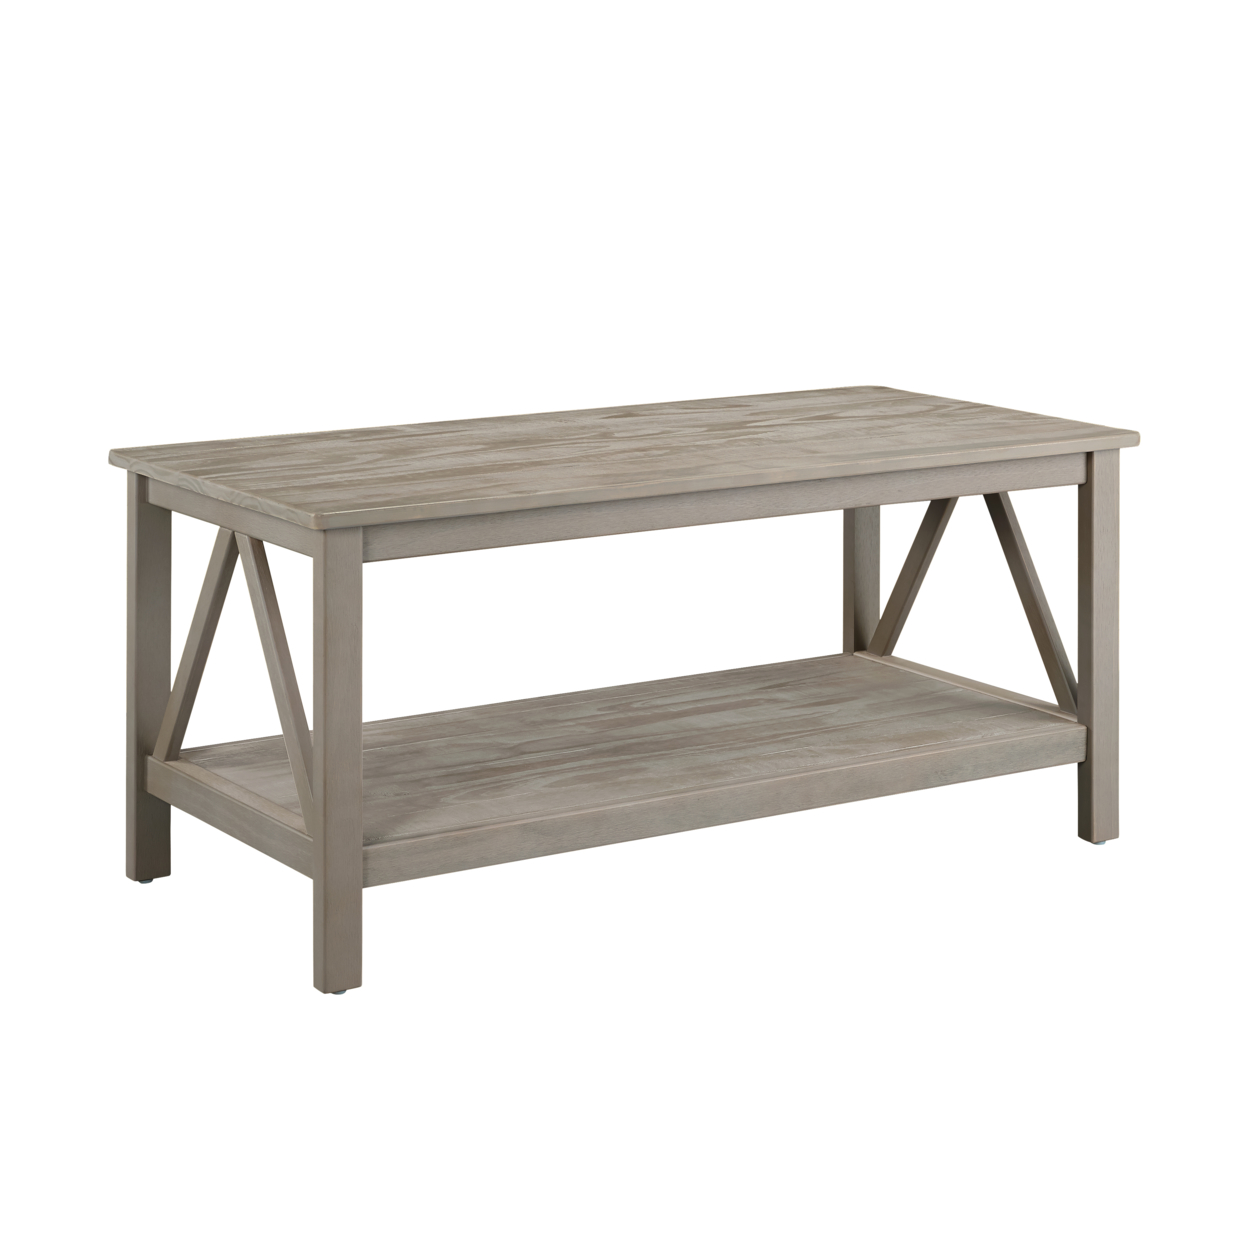 Titian Rustic Gray Coffee Table ювелирный камень jin yu titian 1 150